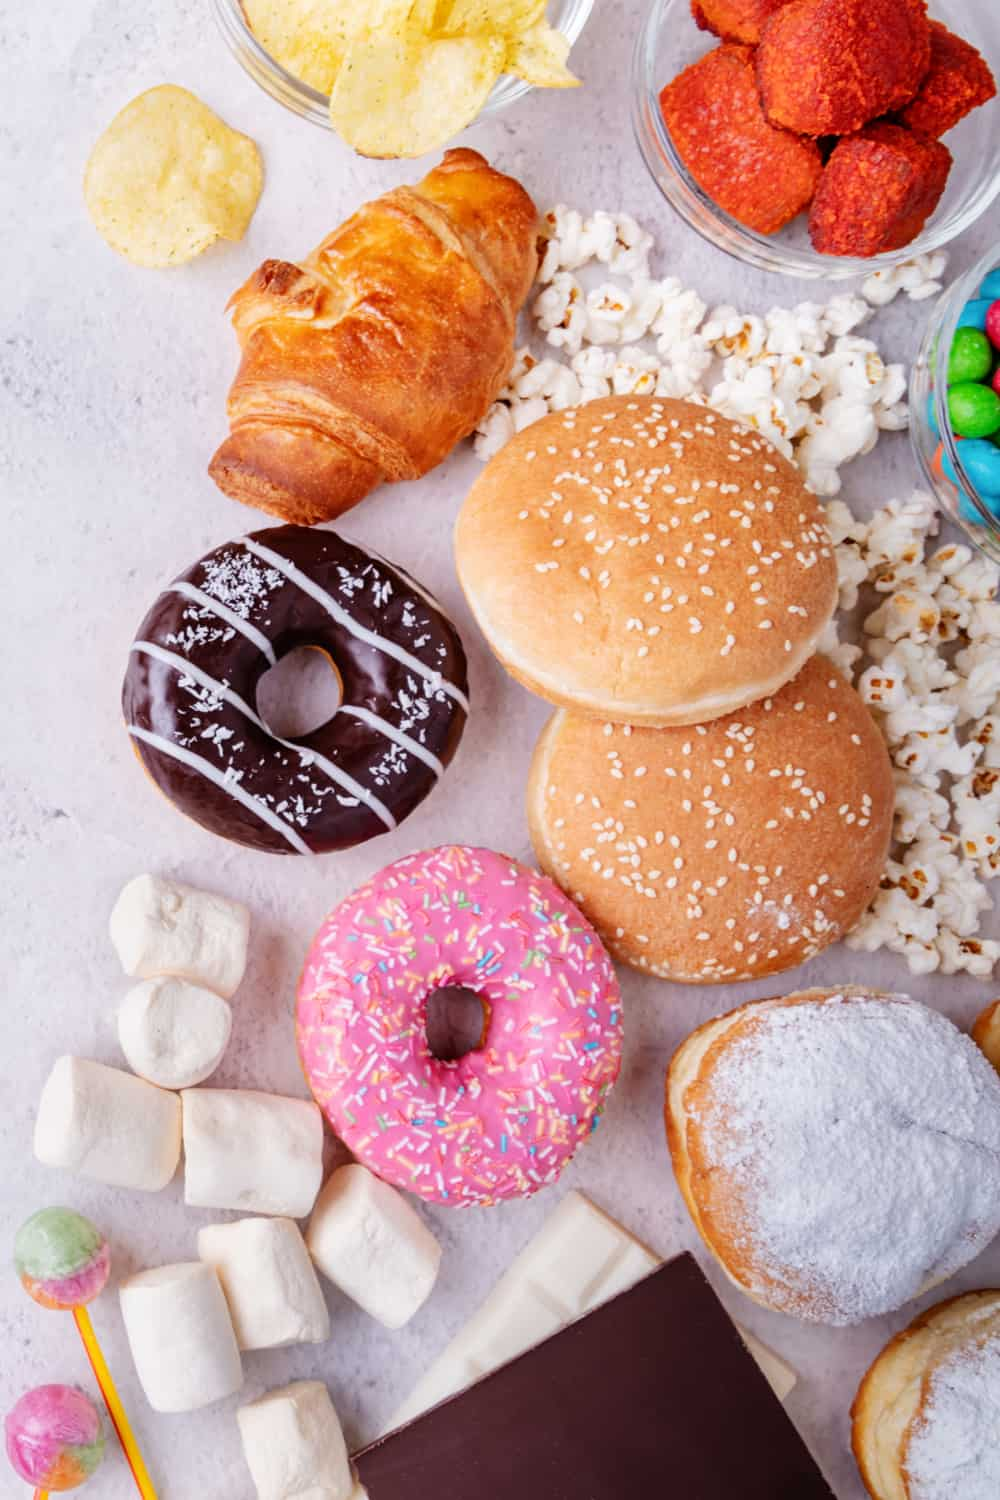 The Risk of Consuming an Expired Sugar